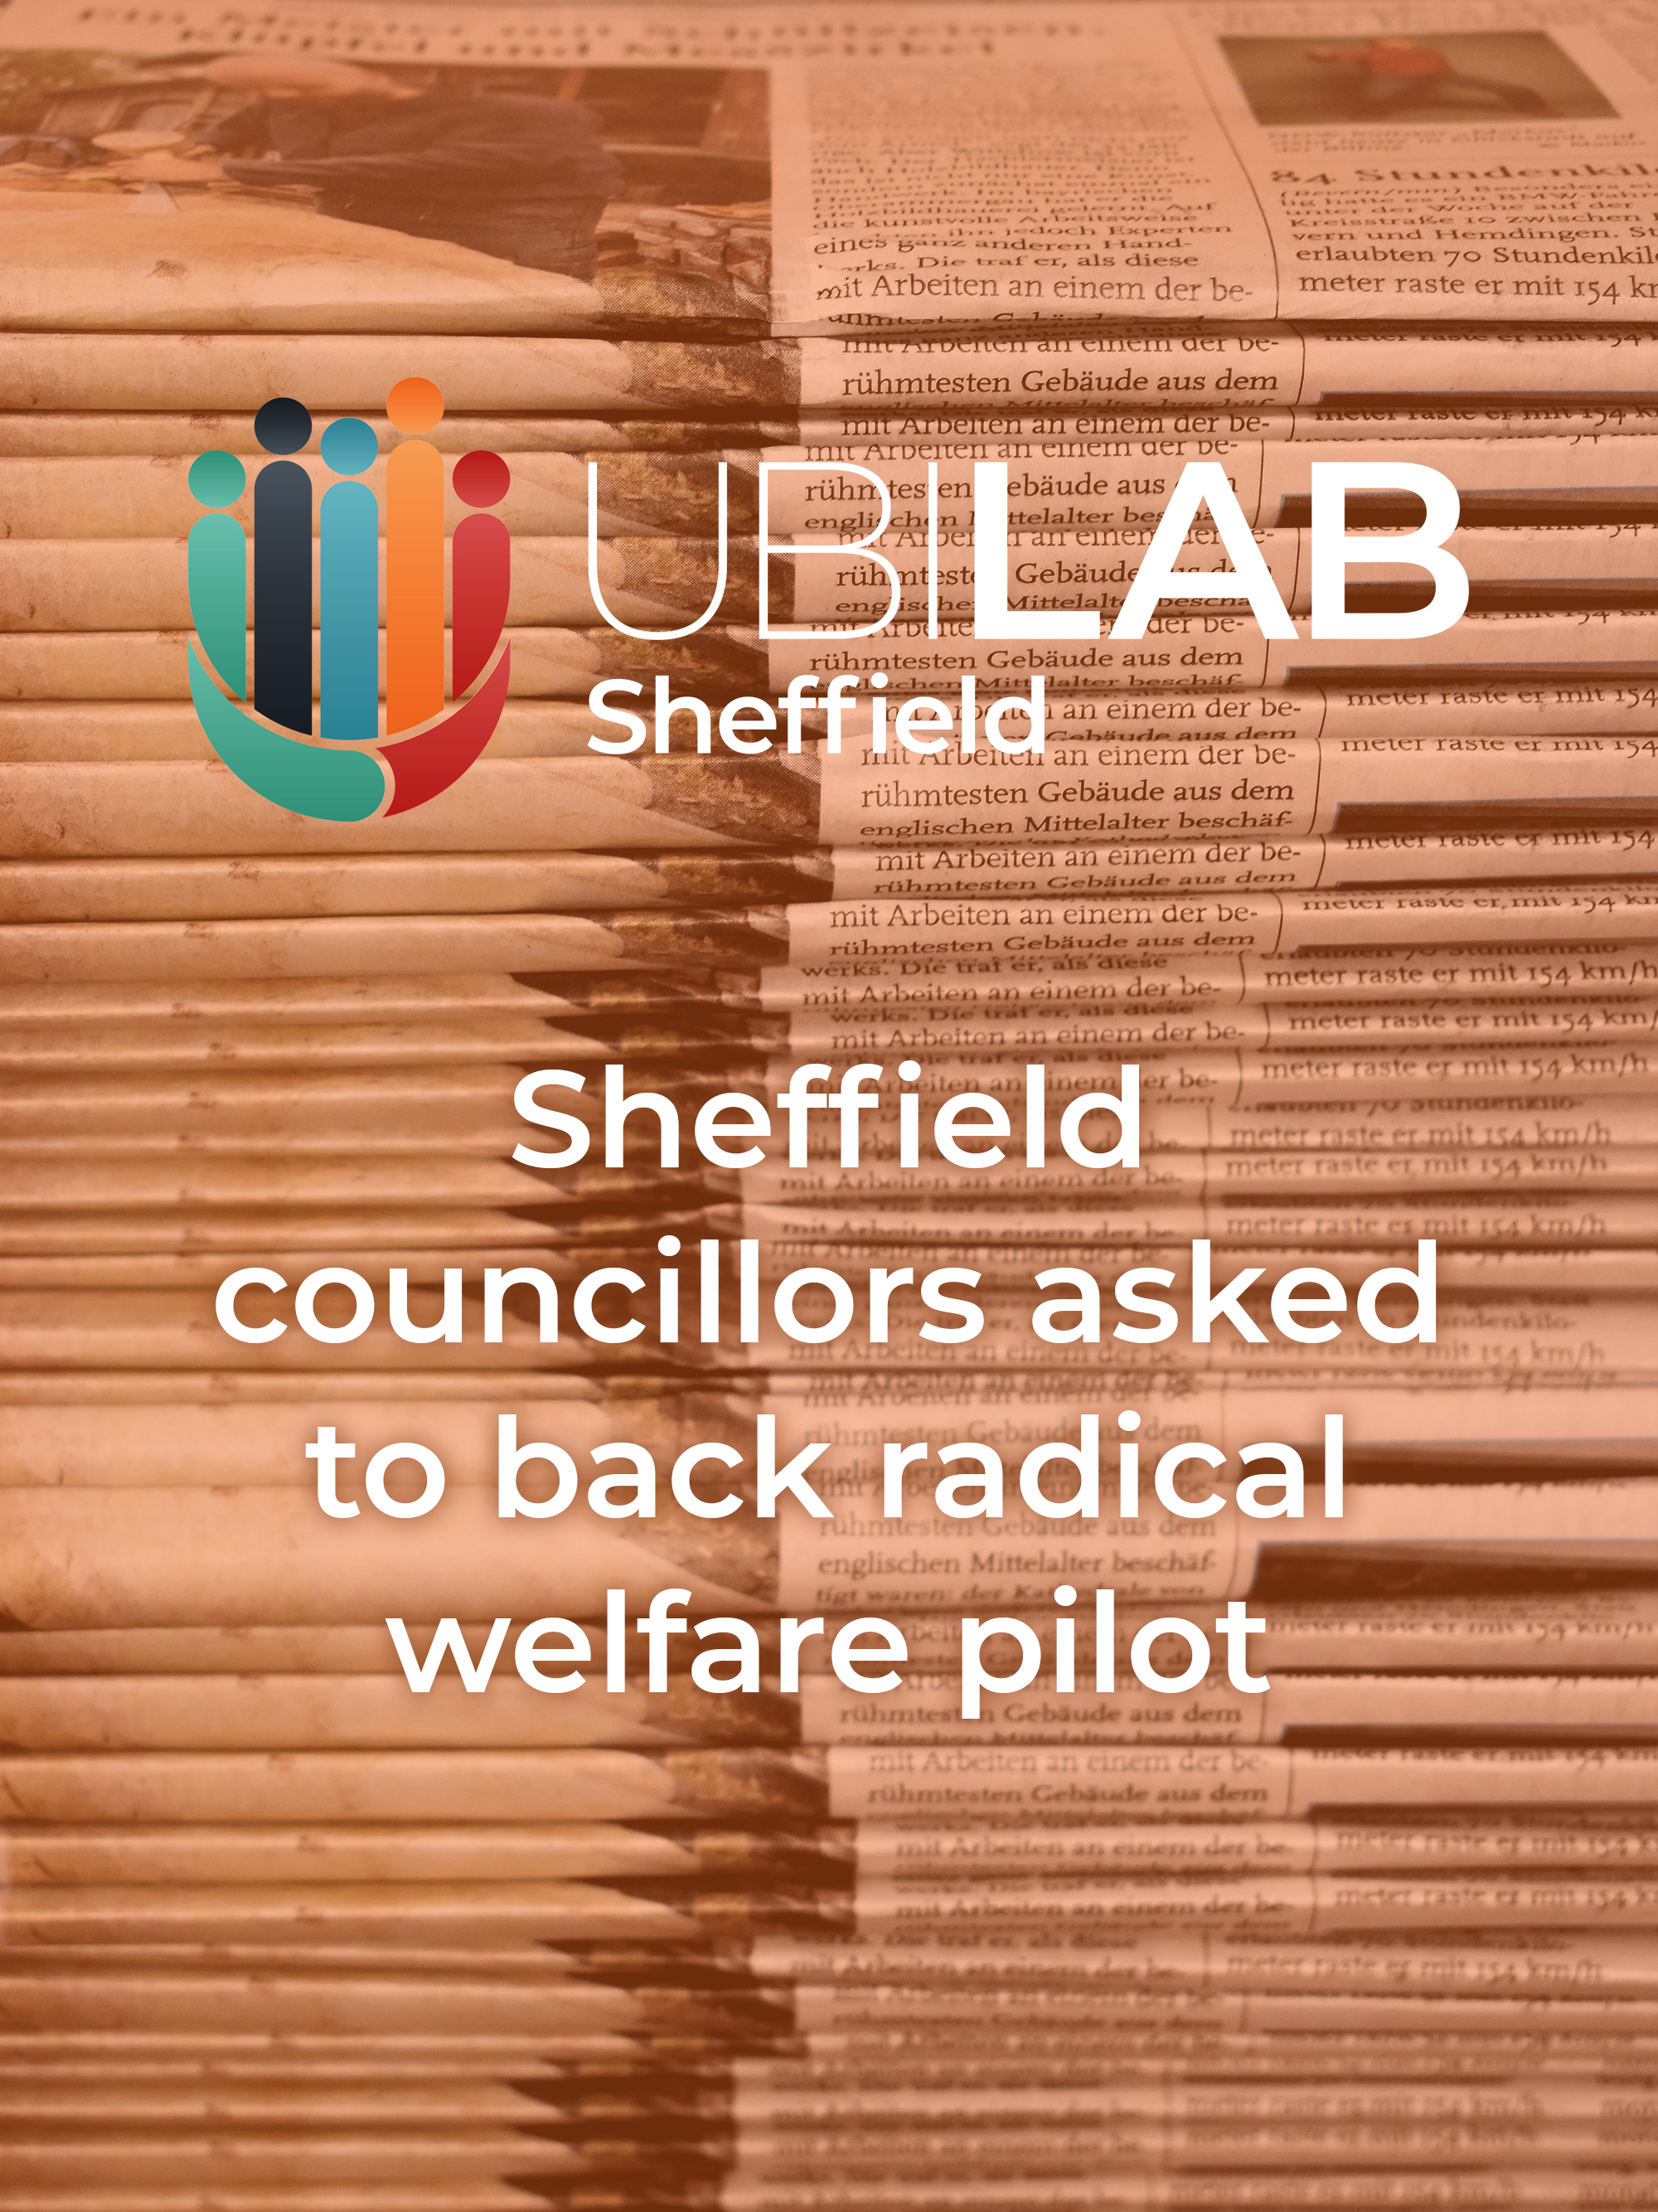 Sheffield Councillors asked to back radical welfare pilot - 29th Mar 19 - All 84 Councillors in Sheffield have today been asked to give their support for a pilot of Universal Basic Income (UBI) in the city.